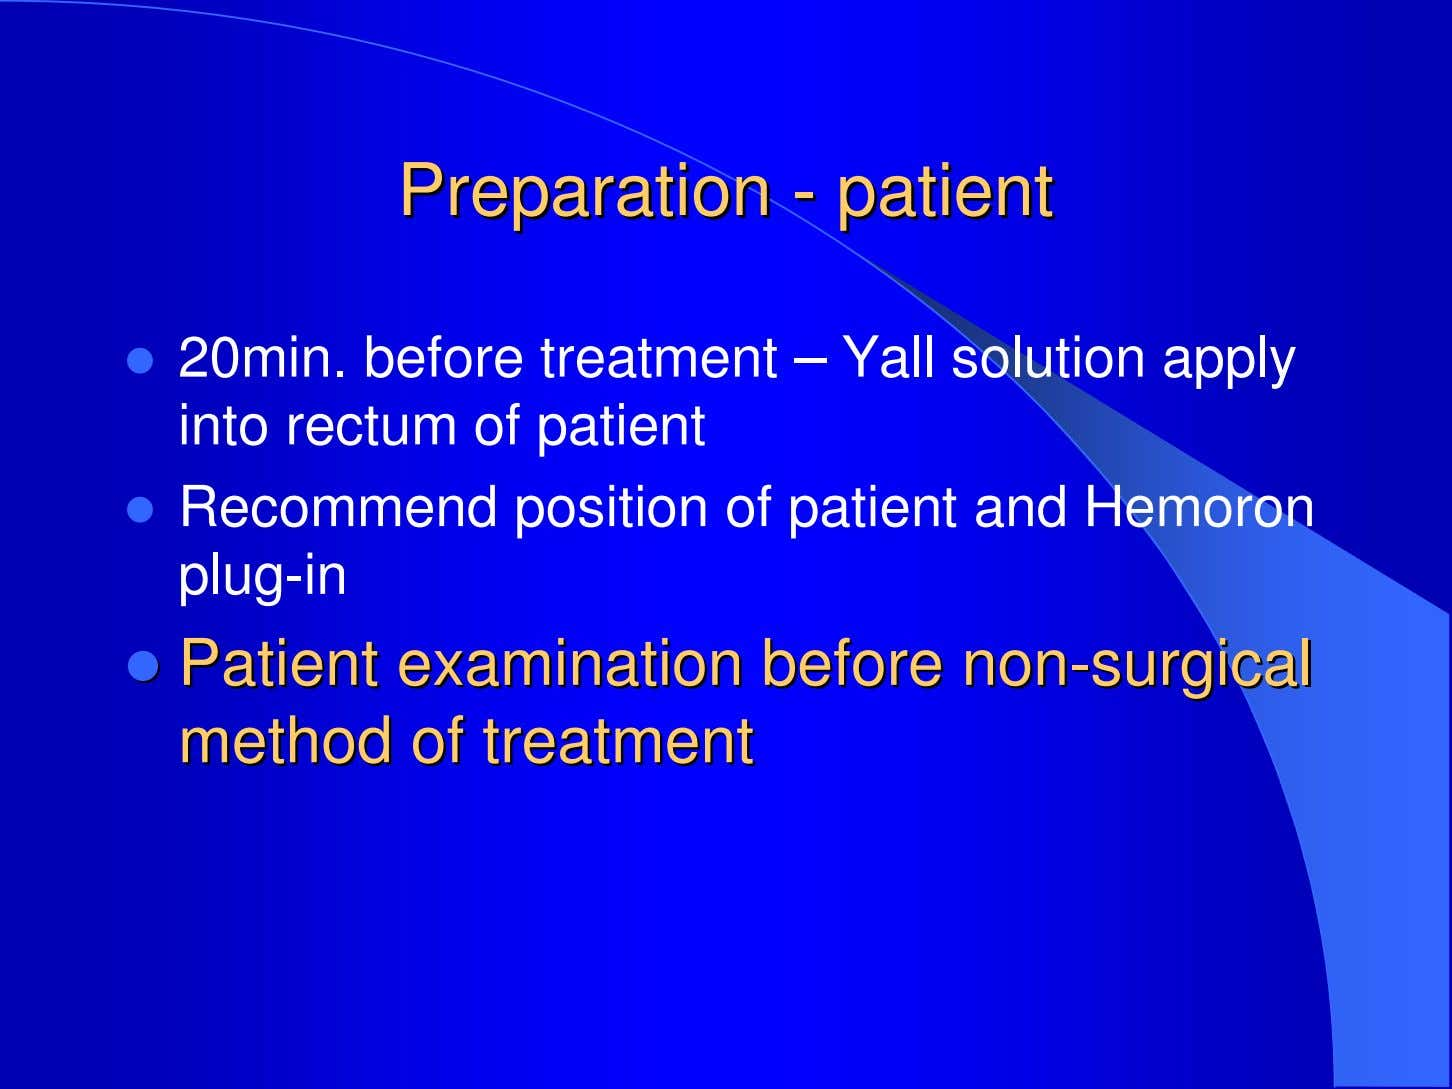 PreparationPreparation -- patientpatient 20min. before treatment – Yall solution apply into rectum of